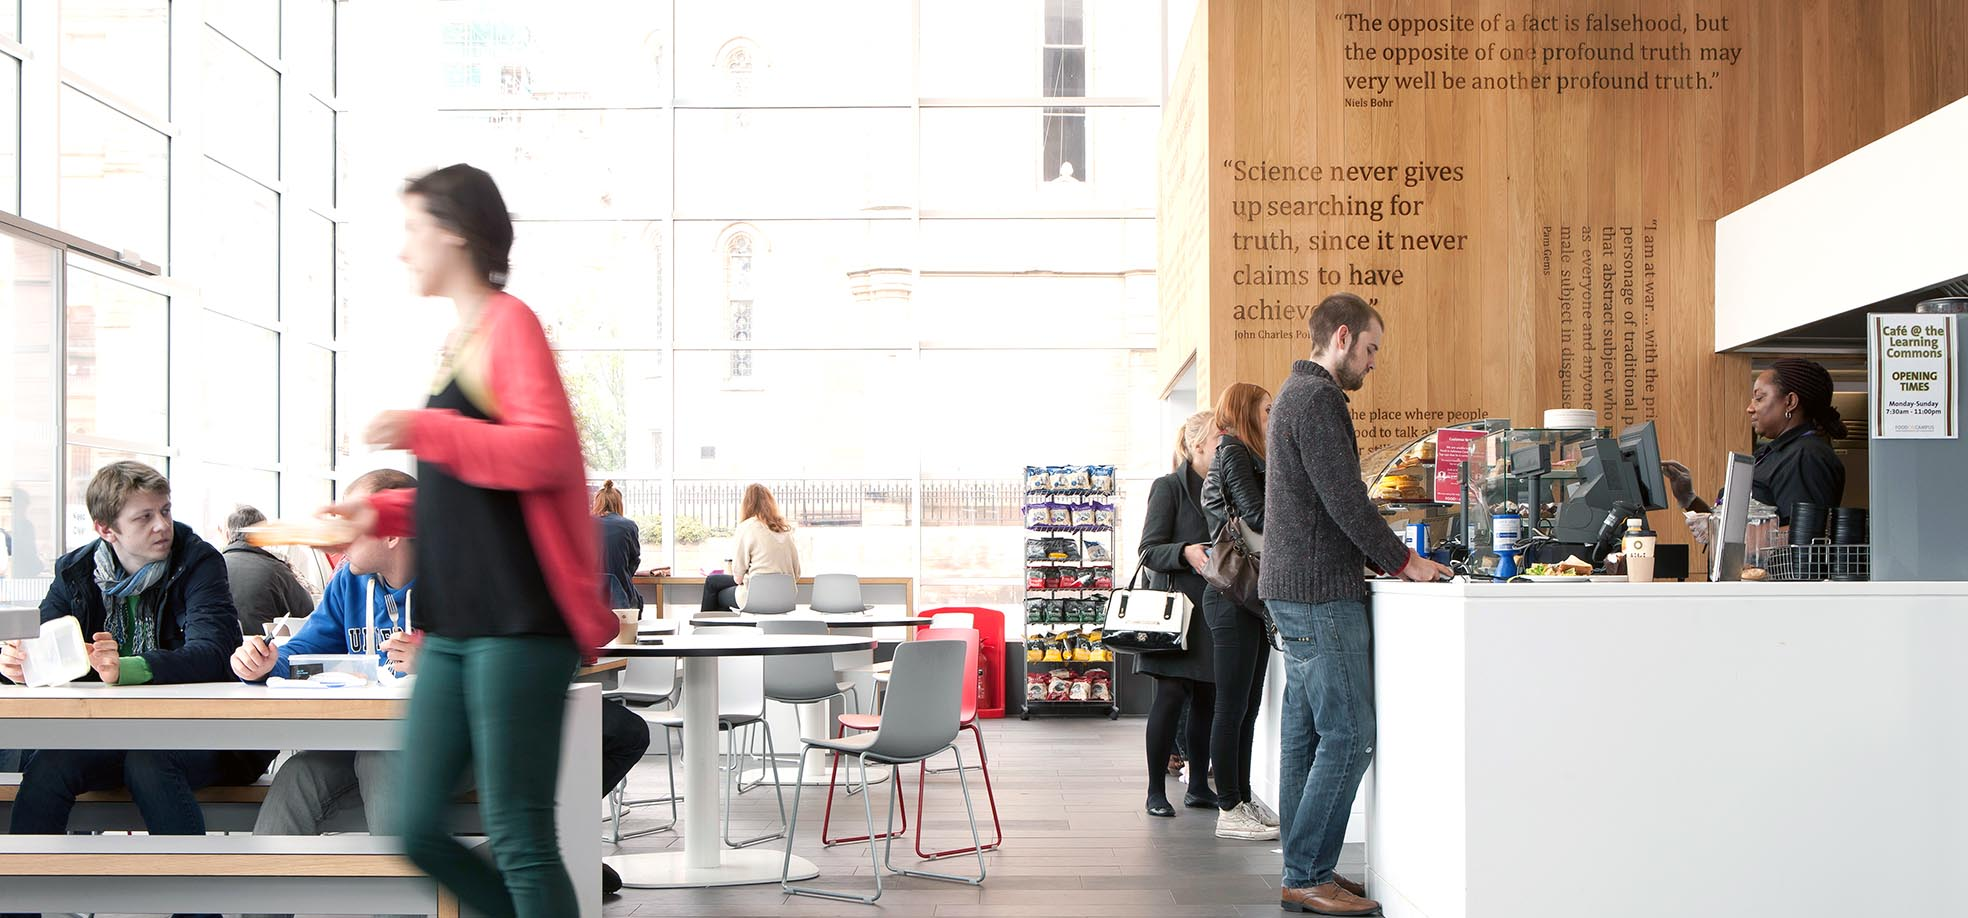 Image: Students at open day